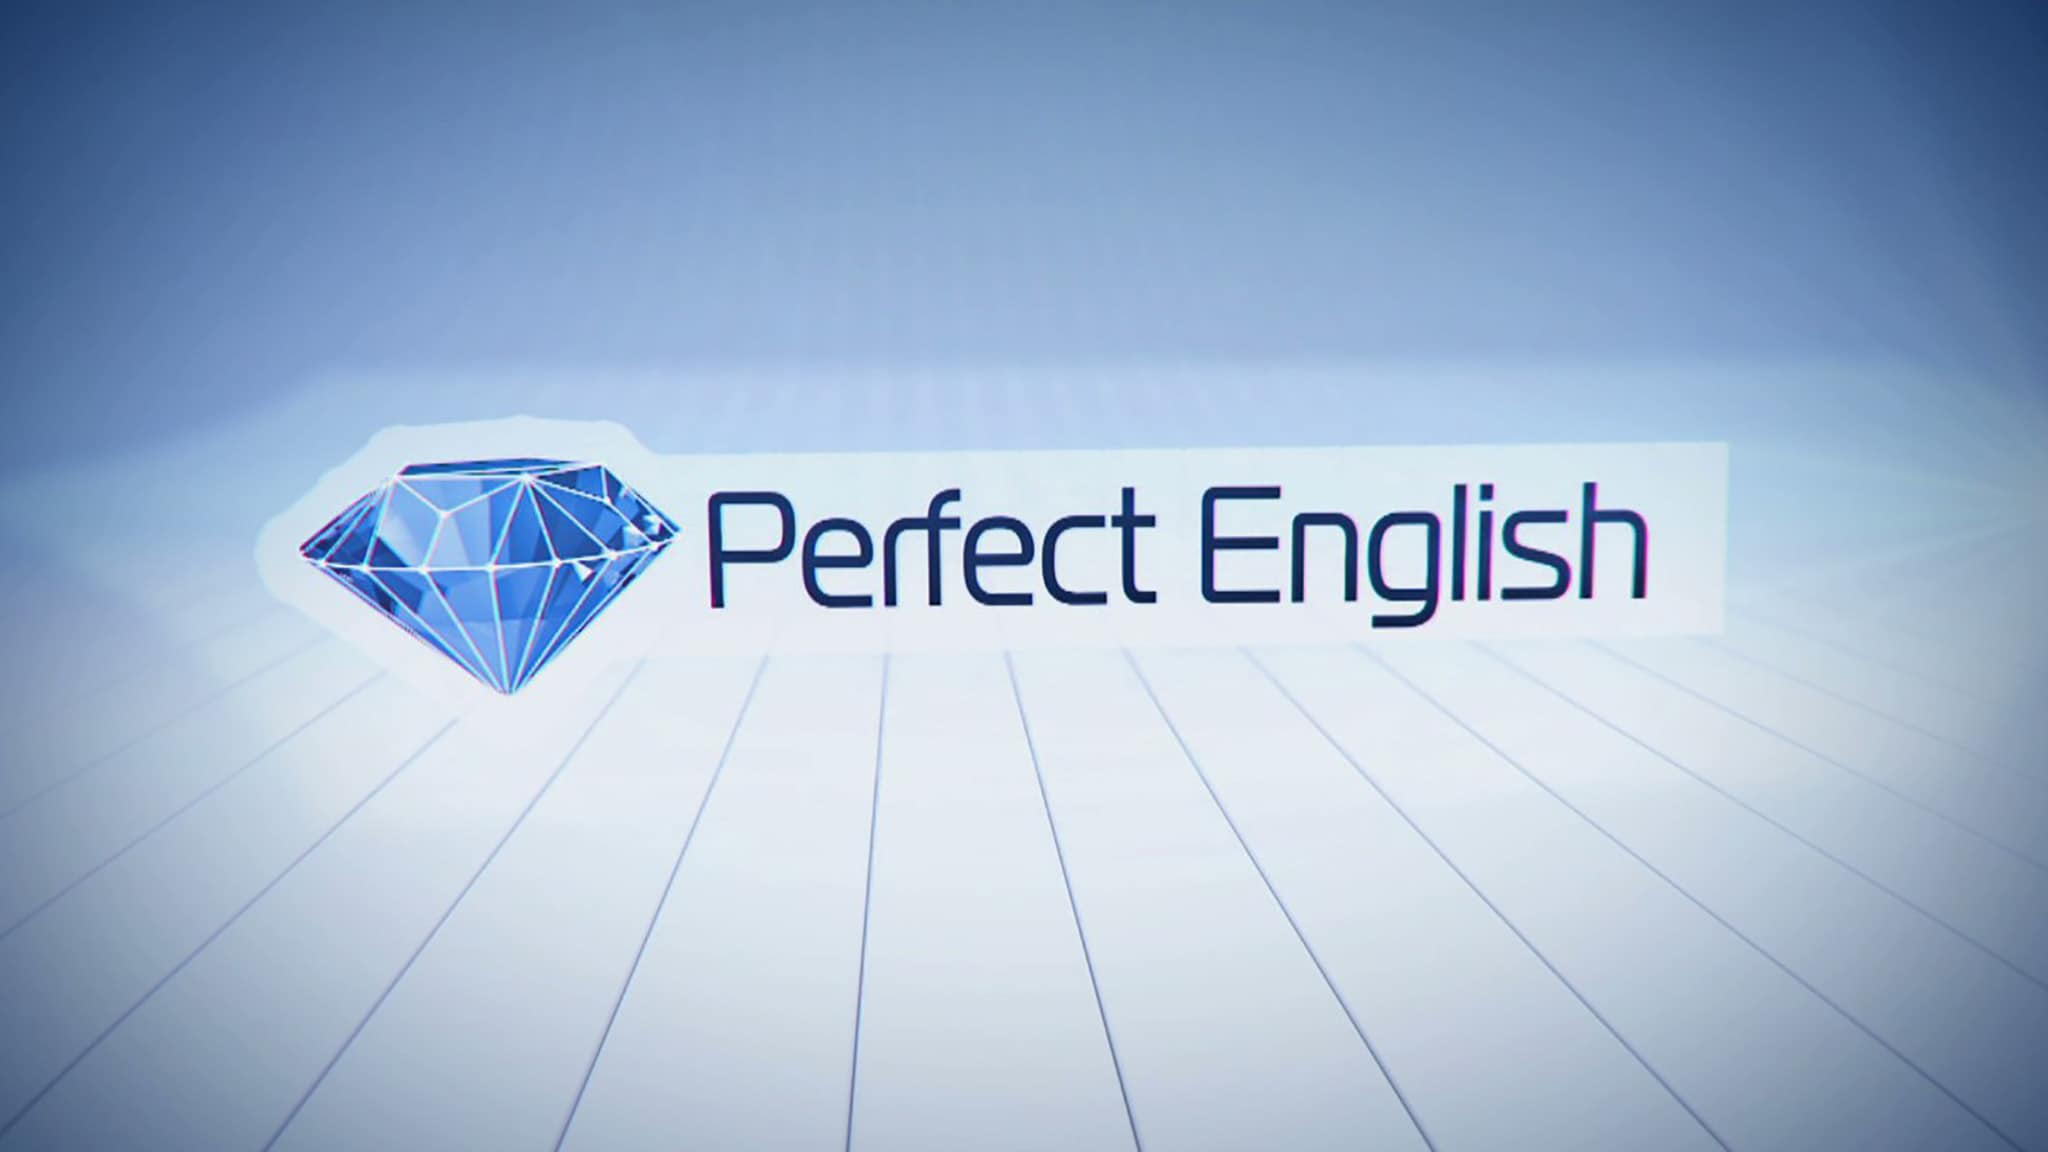 Rai Scuola Perfect English ep.21 Prima TV per Rai